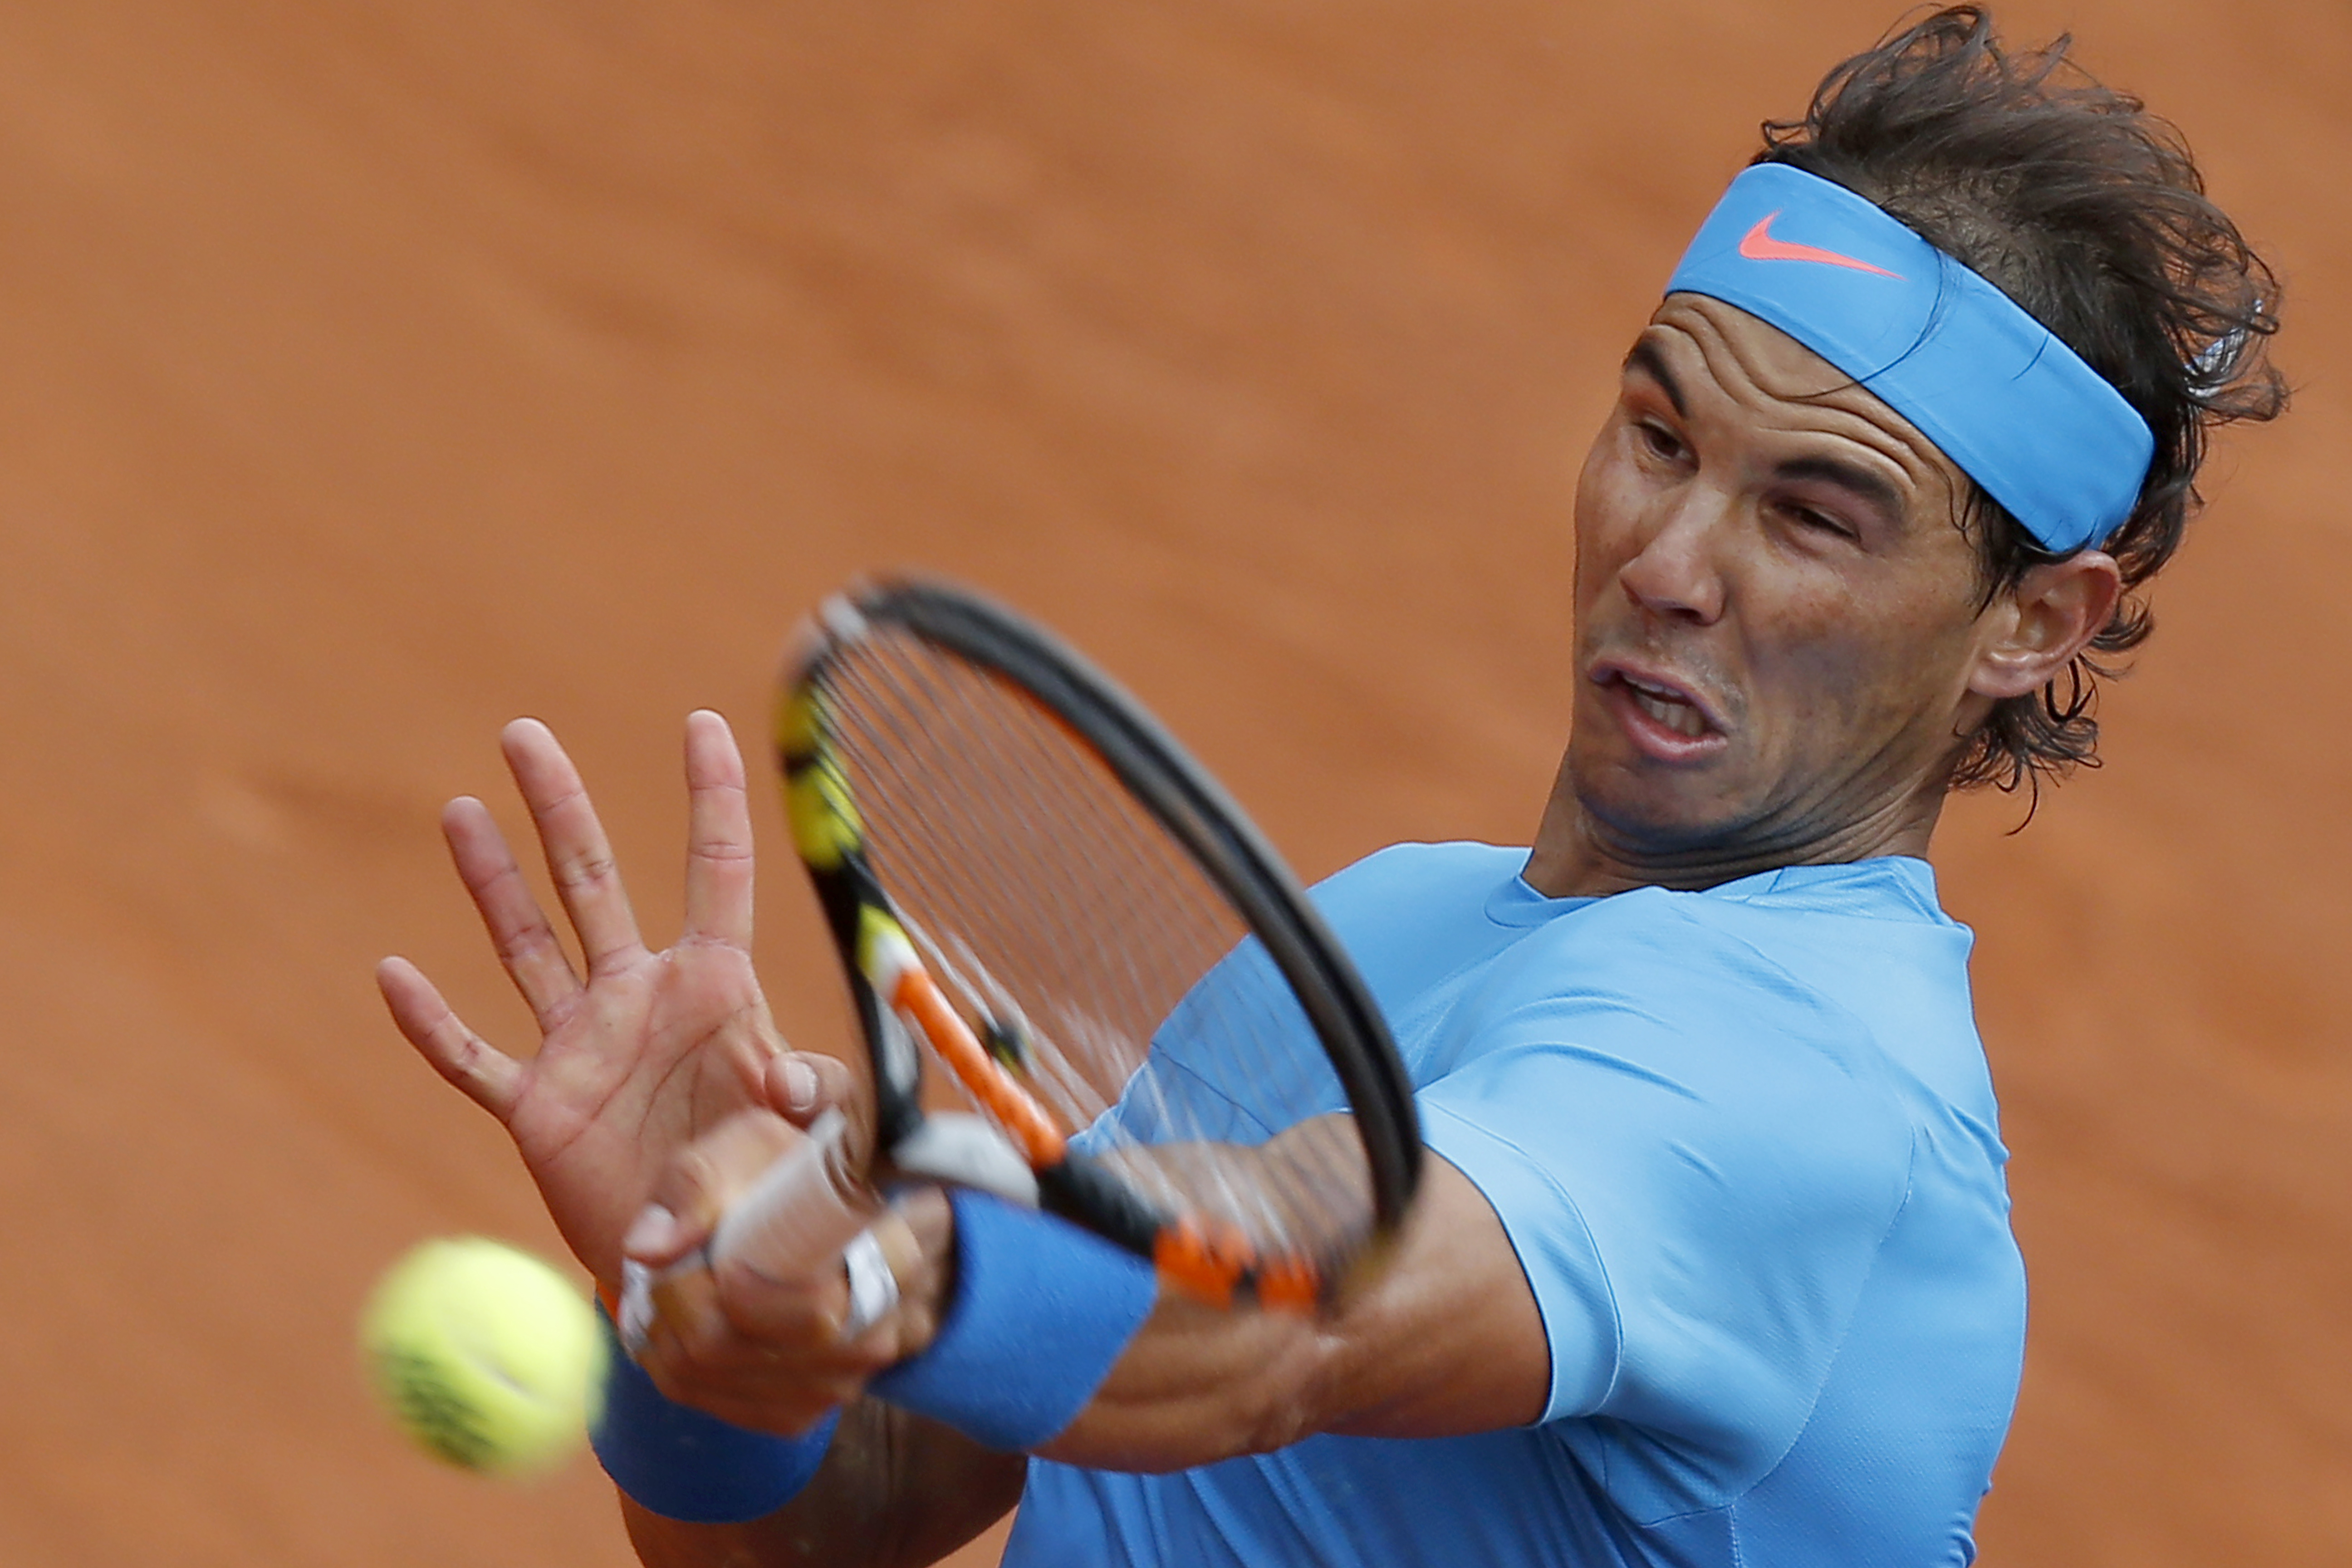 Spain's Rafael Nadal returns in the first round match of the French Open tennis tournament against Quentin Halys of France at the Roland Garros stadium, in Paris, France, Tuesday, May 26, 2015. Nadal won in three sets 6-3, 6-3, 6-4. (AP Photo/Michel Euler